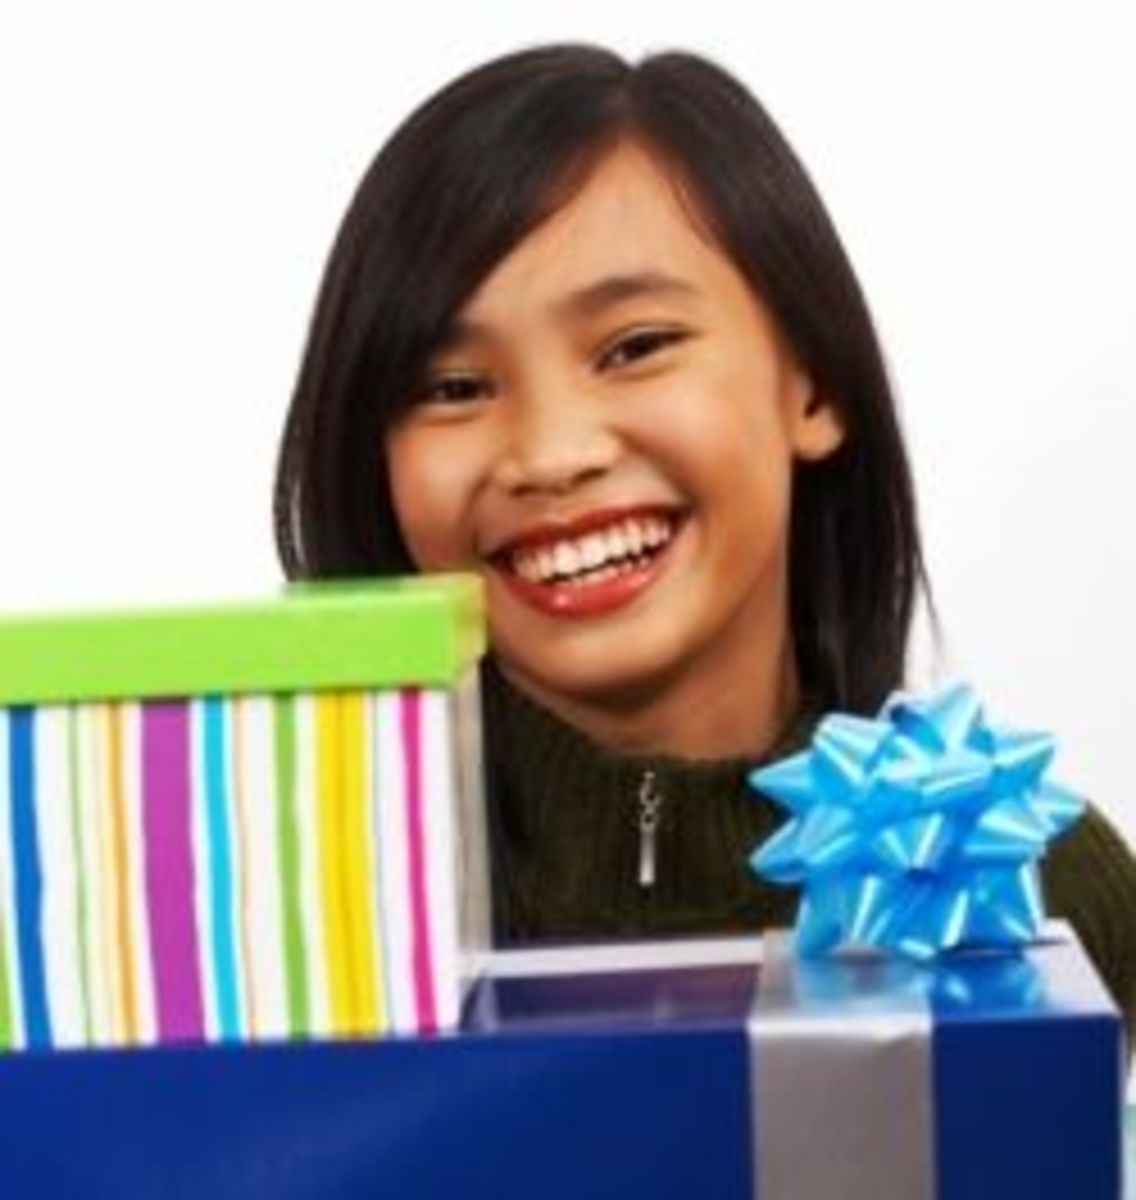 Best Gifts for 10 Year Old Girls